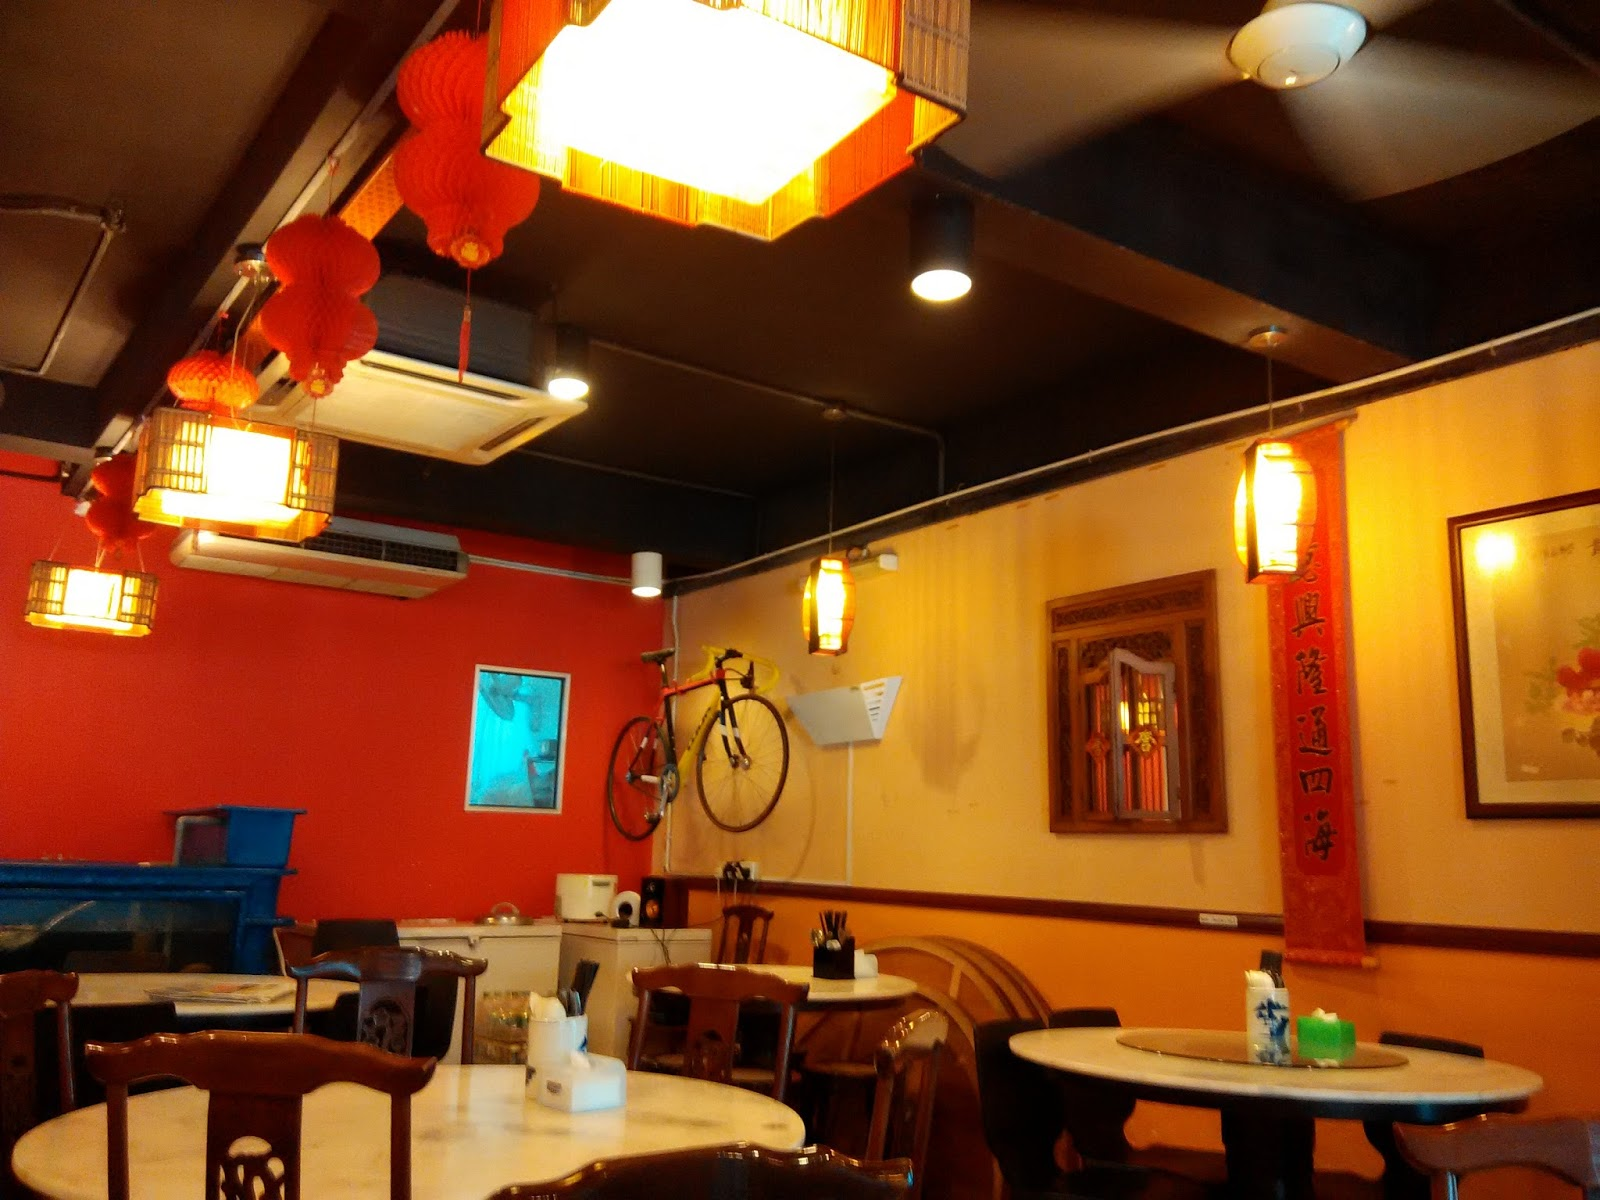 20 nov 2015 i bumped into this restaurant teochew and hakka jalan ampang when i moved to ampang and searching for nice food